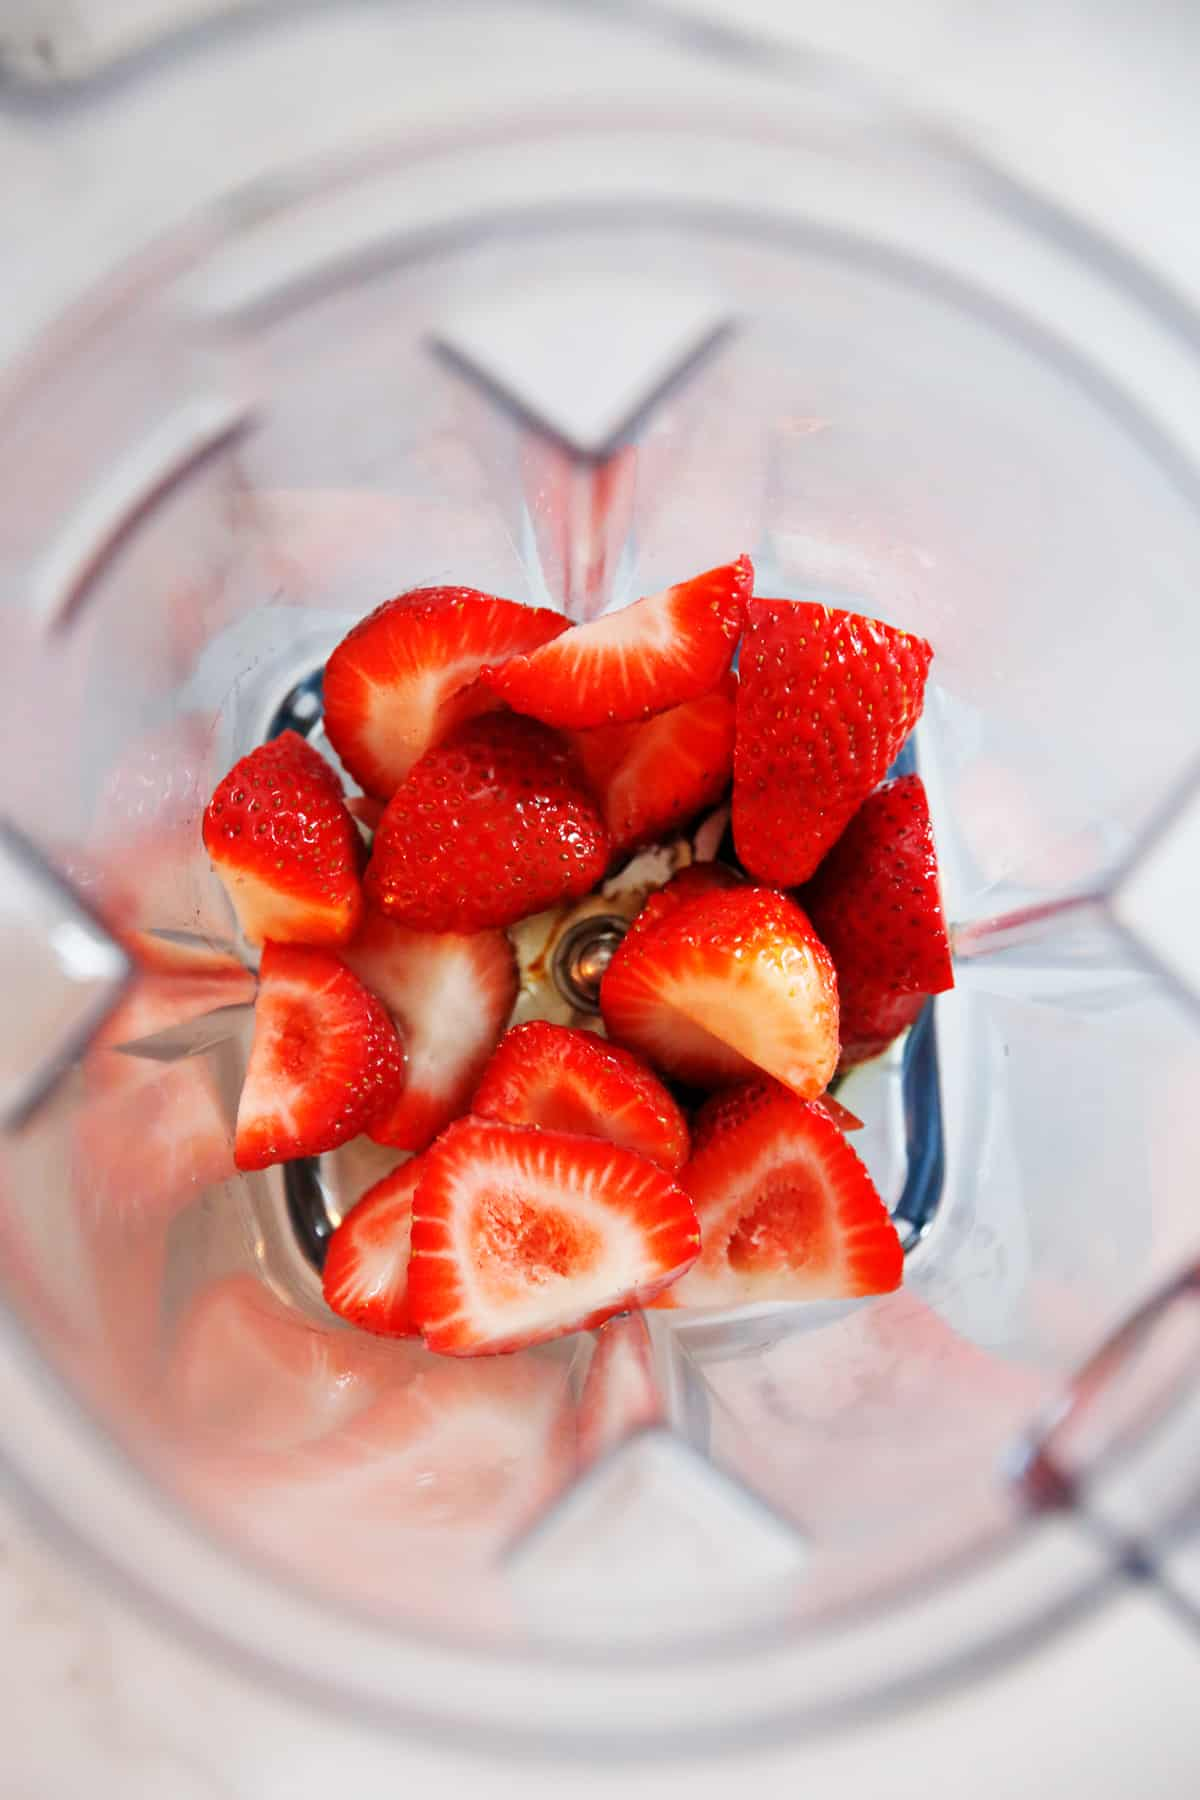 Strawberries in a blender